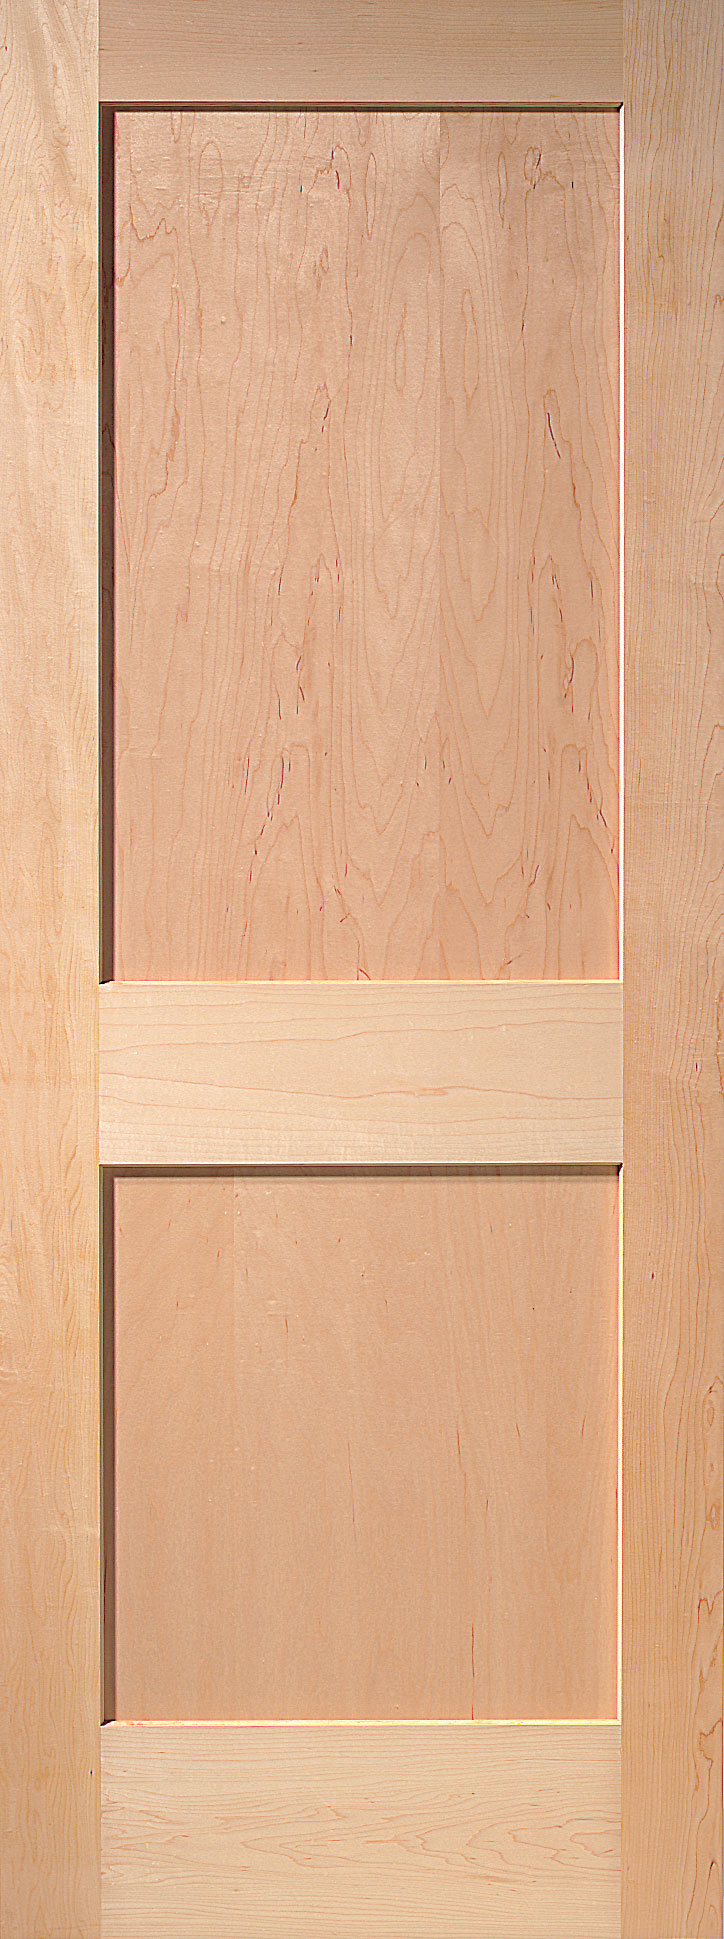 2 Panel Maple Interior Door